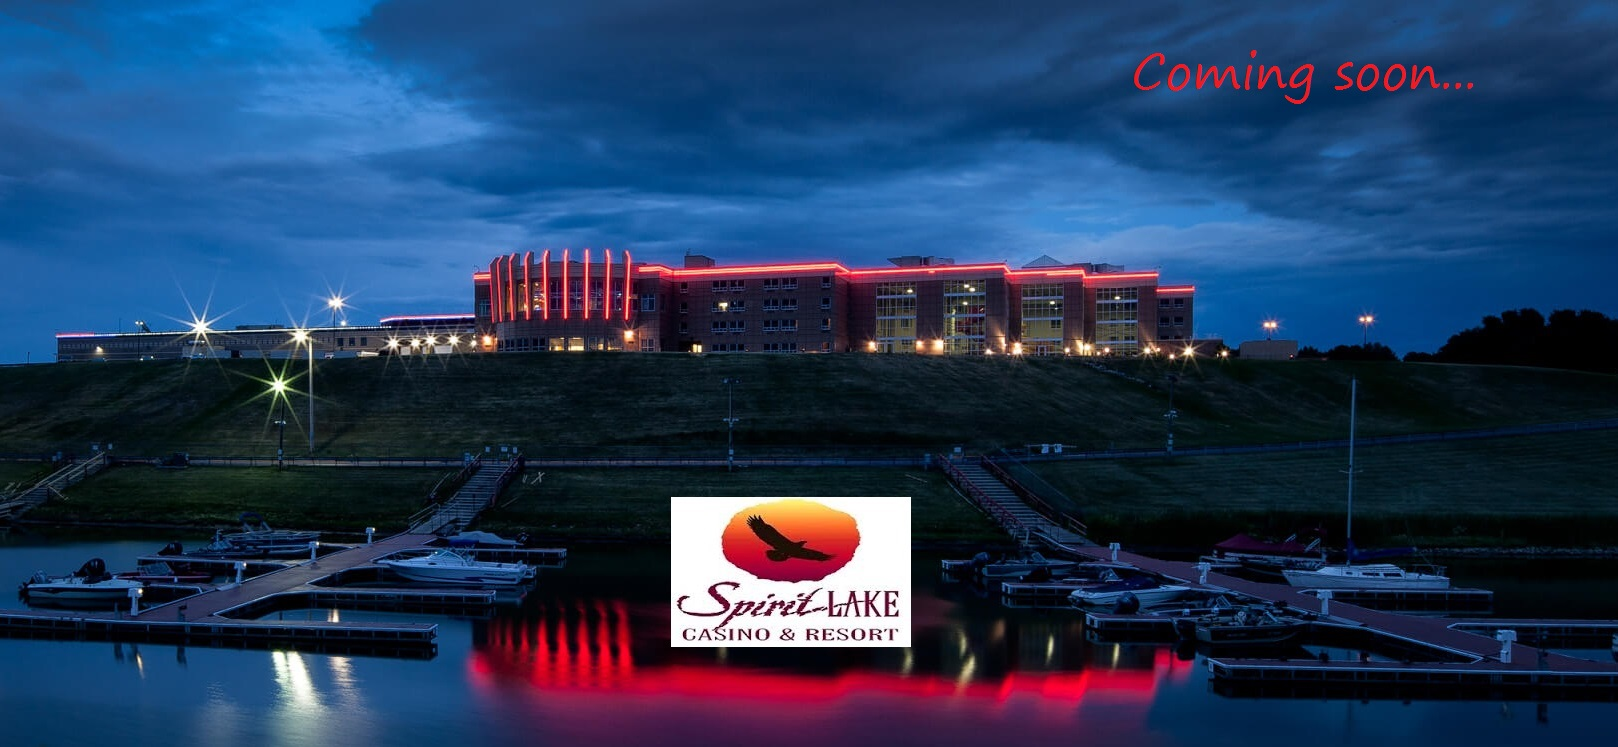 Spirit Lake Casino Resort Solves Tobacco Smoke Issues